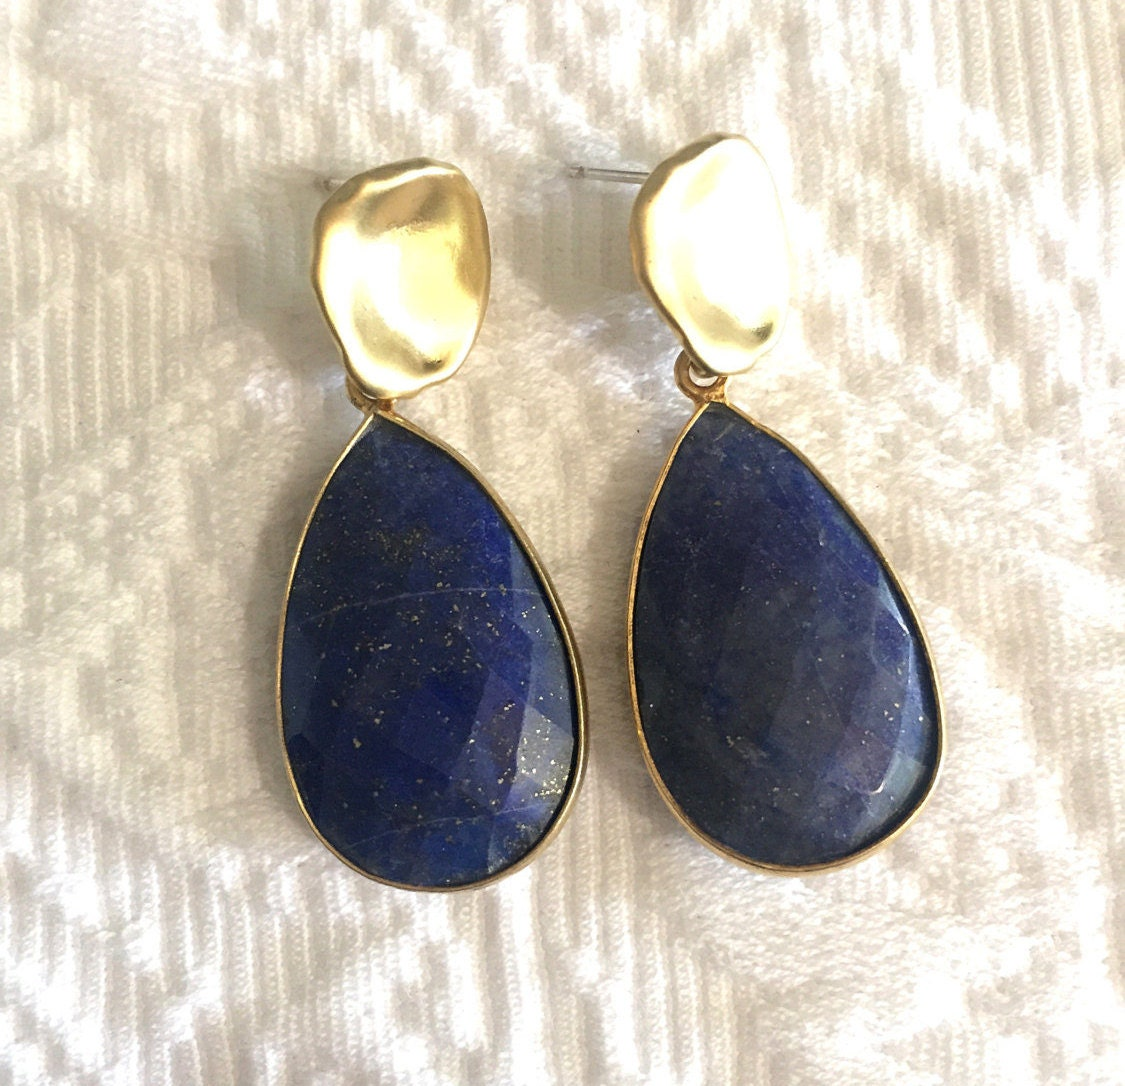 hand genuine earrings compassion lazuli made products lovepray jewelry lapis gemstone